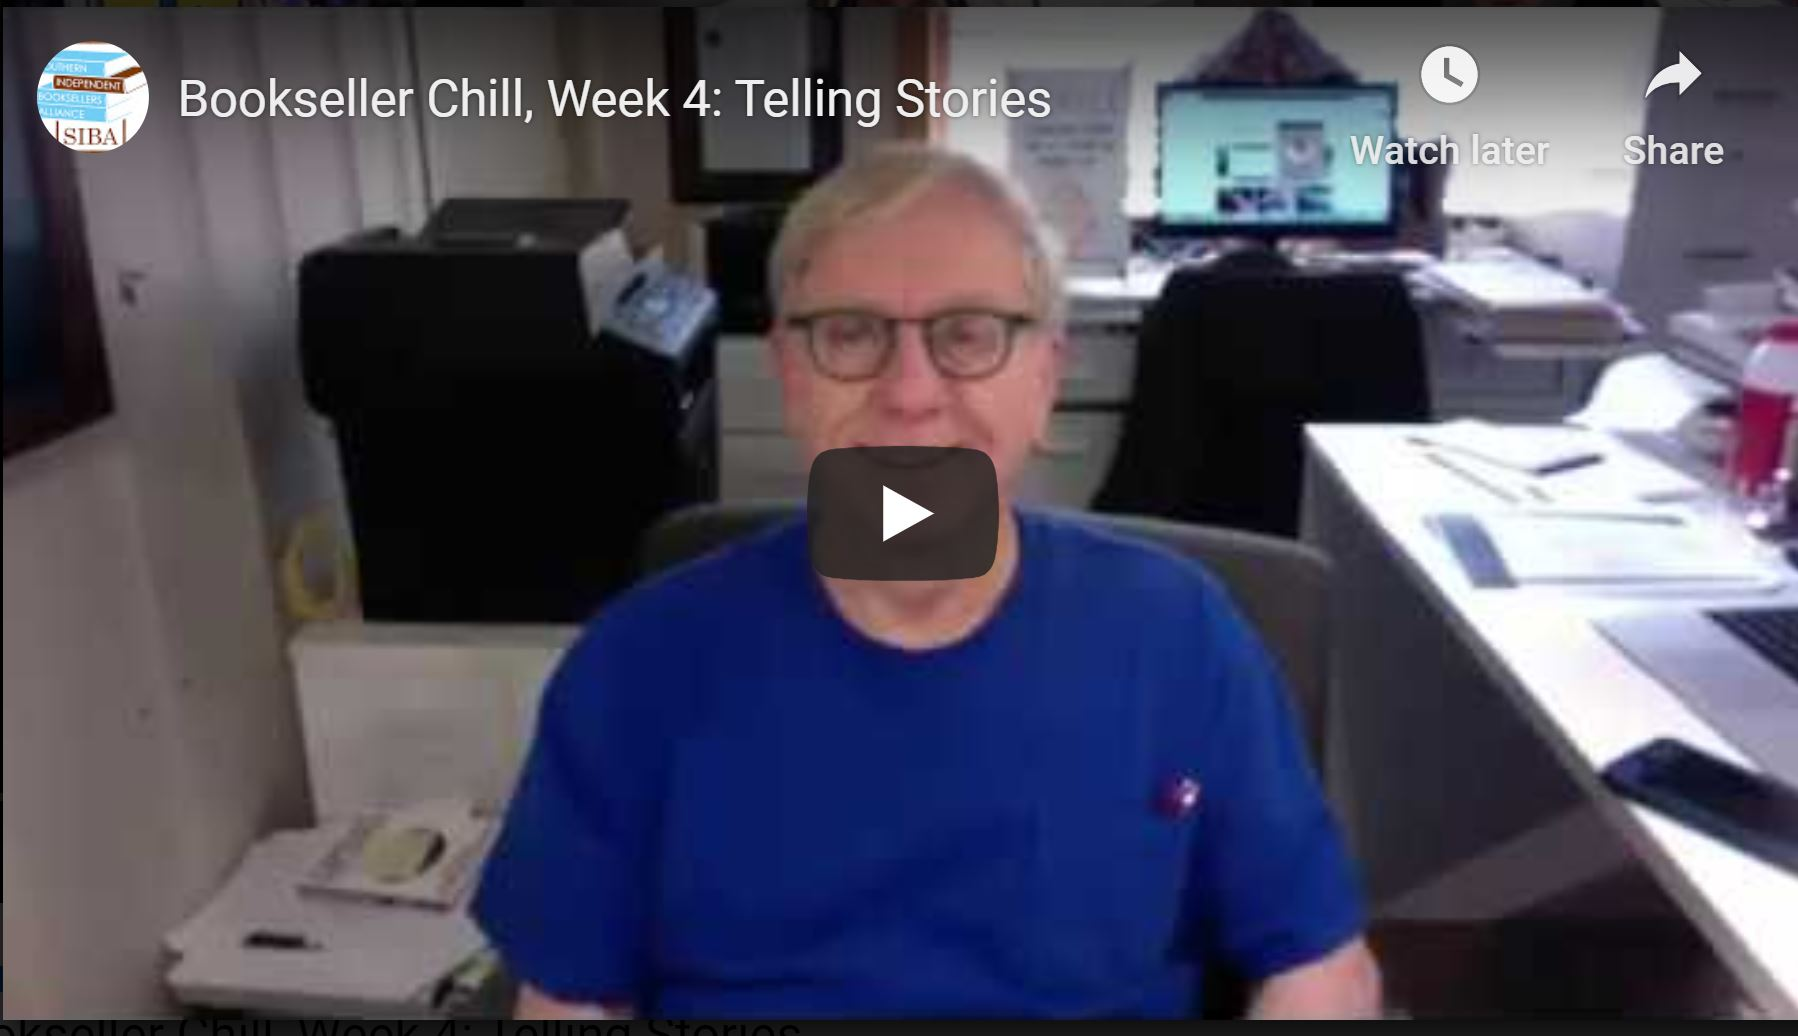 Bookseller Chill, Week 4: Telling Stories